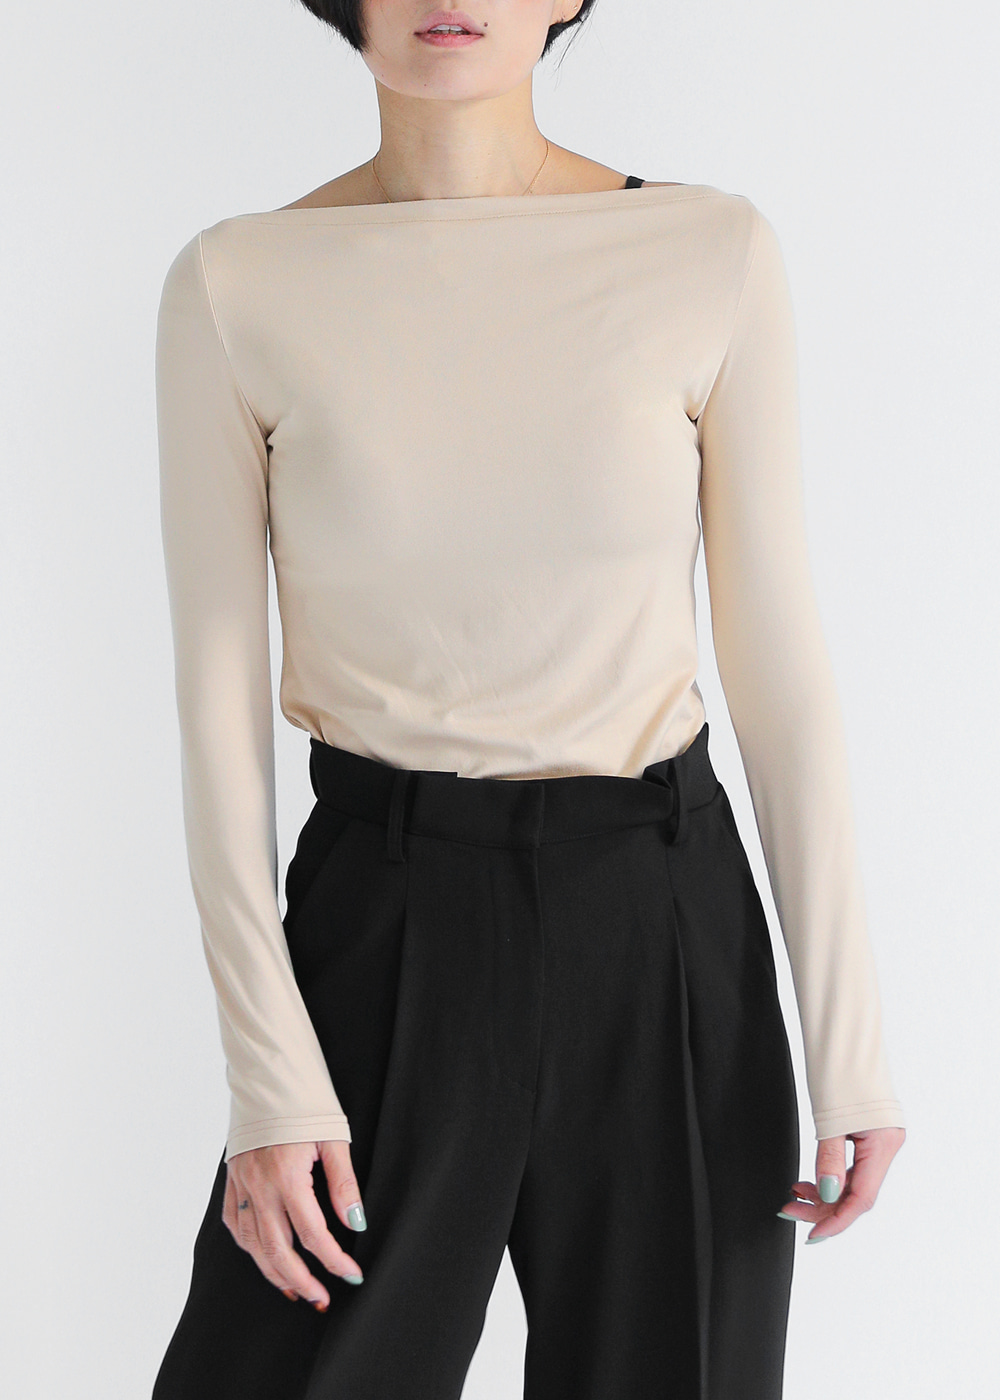 Simply Boat Neck Top